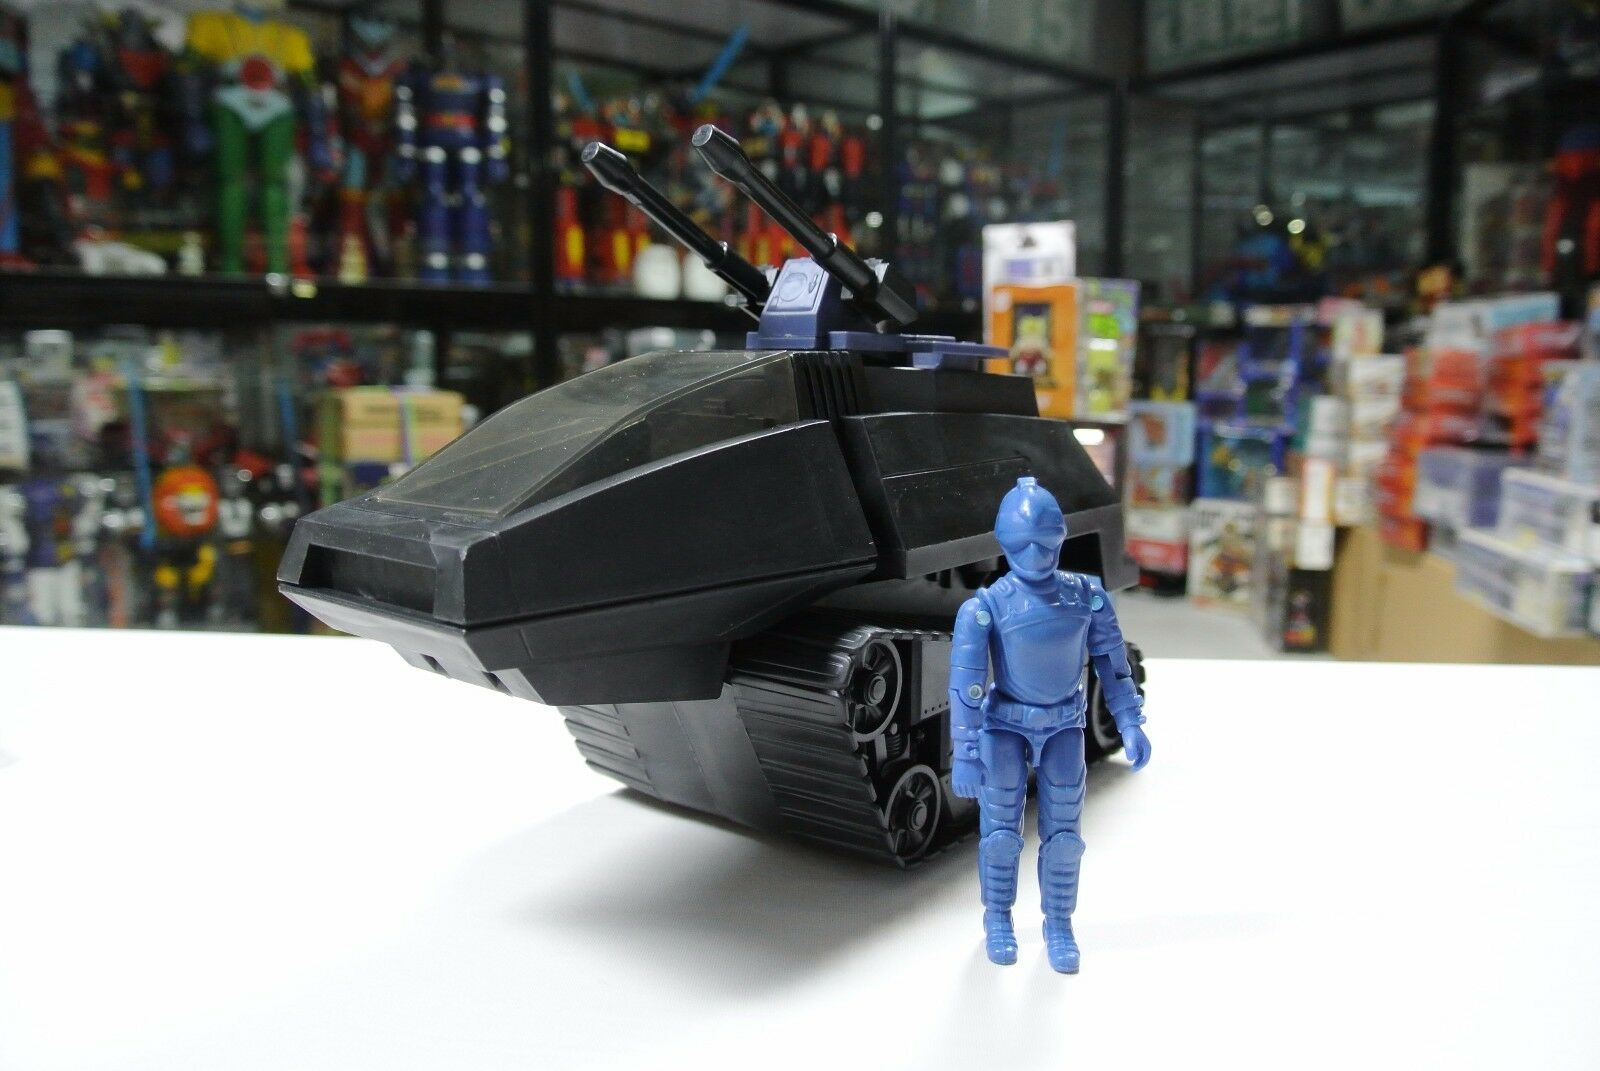 1983 Hasbro GI JOE COBRA HISS véhicule Test Shot prougeotype factory sample Tank